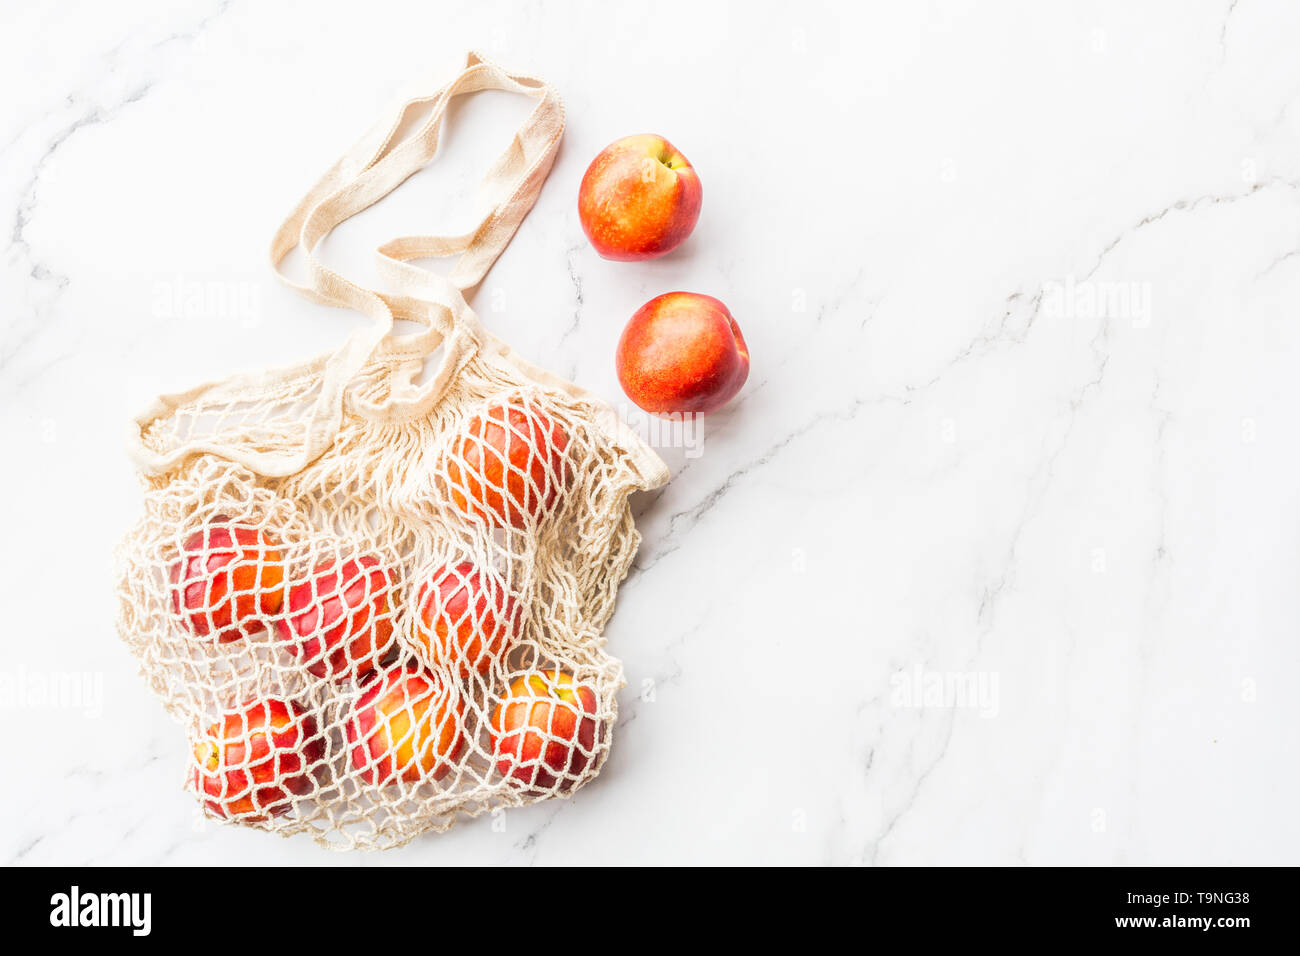 Fresh raw nectarines lying in string bag on white marble background. Flat lay, top view, summer, organic food, blogger style. Healthy concept - Stock Image